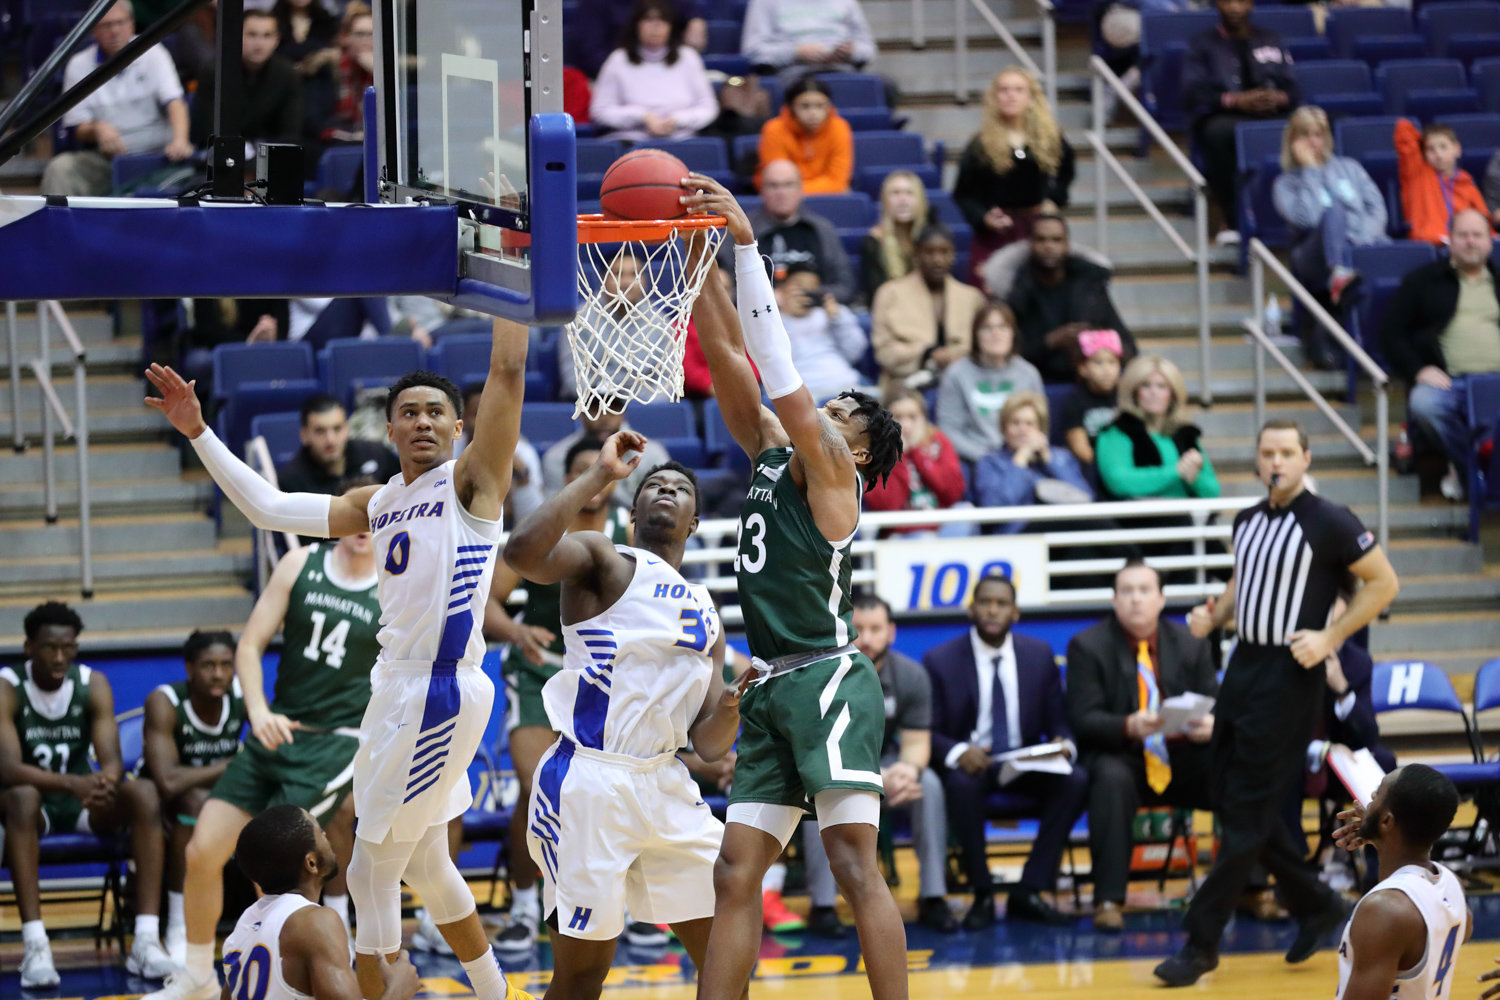 Warren Williams' game-high 16-points helped key Manhattan's victory over Canisius last Friday night.